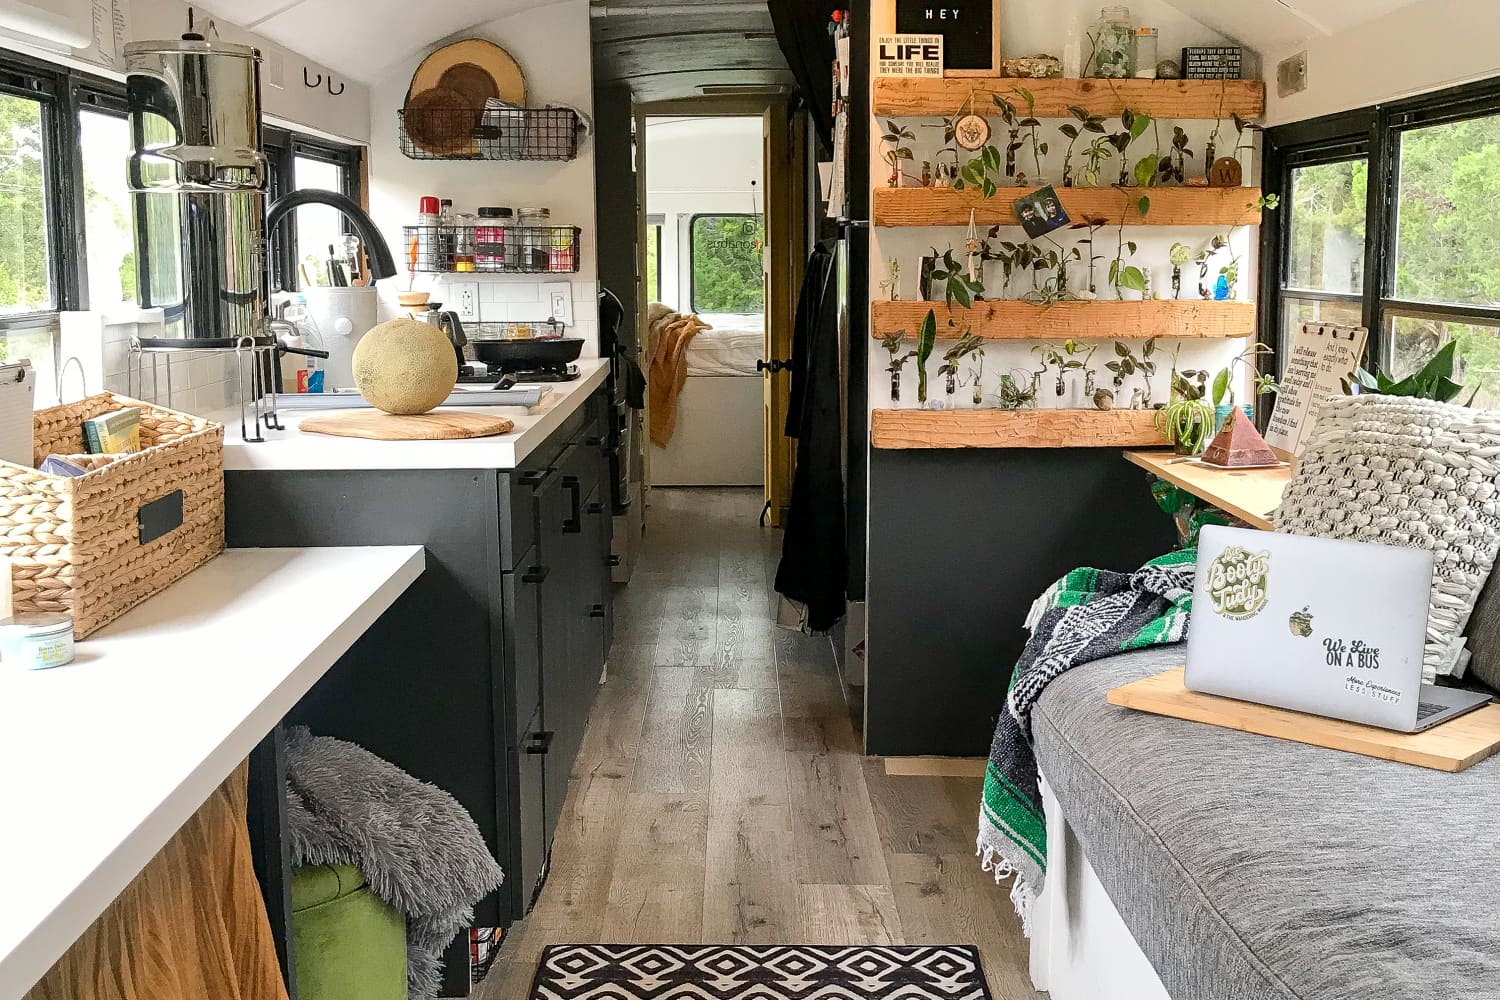 This Family of 4 Lives in a 234-Square-Foot Converted School Bus Home on Wheels